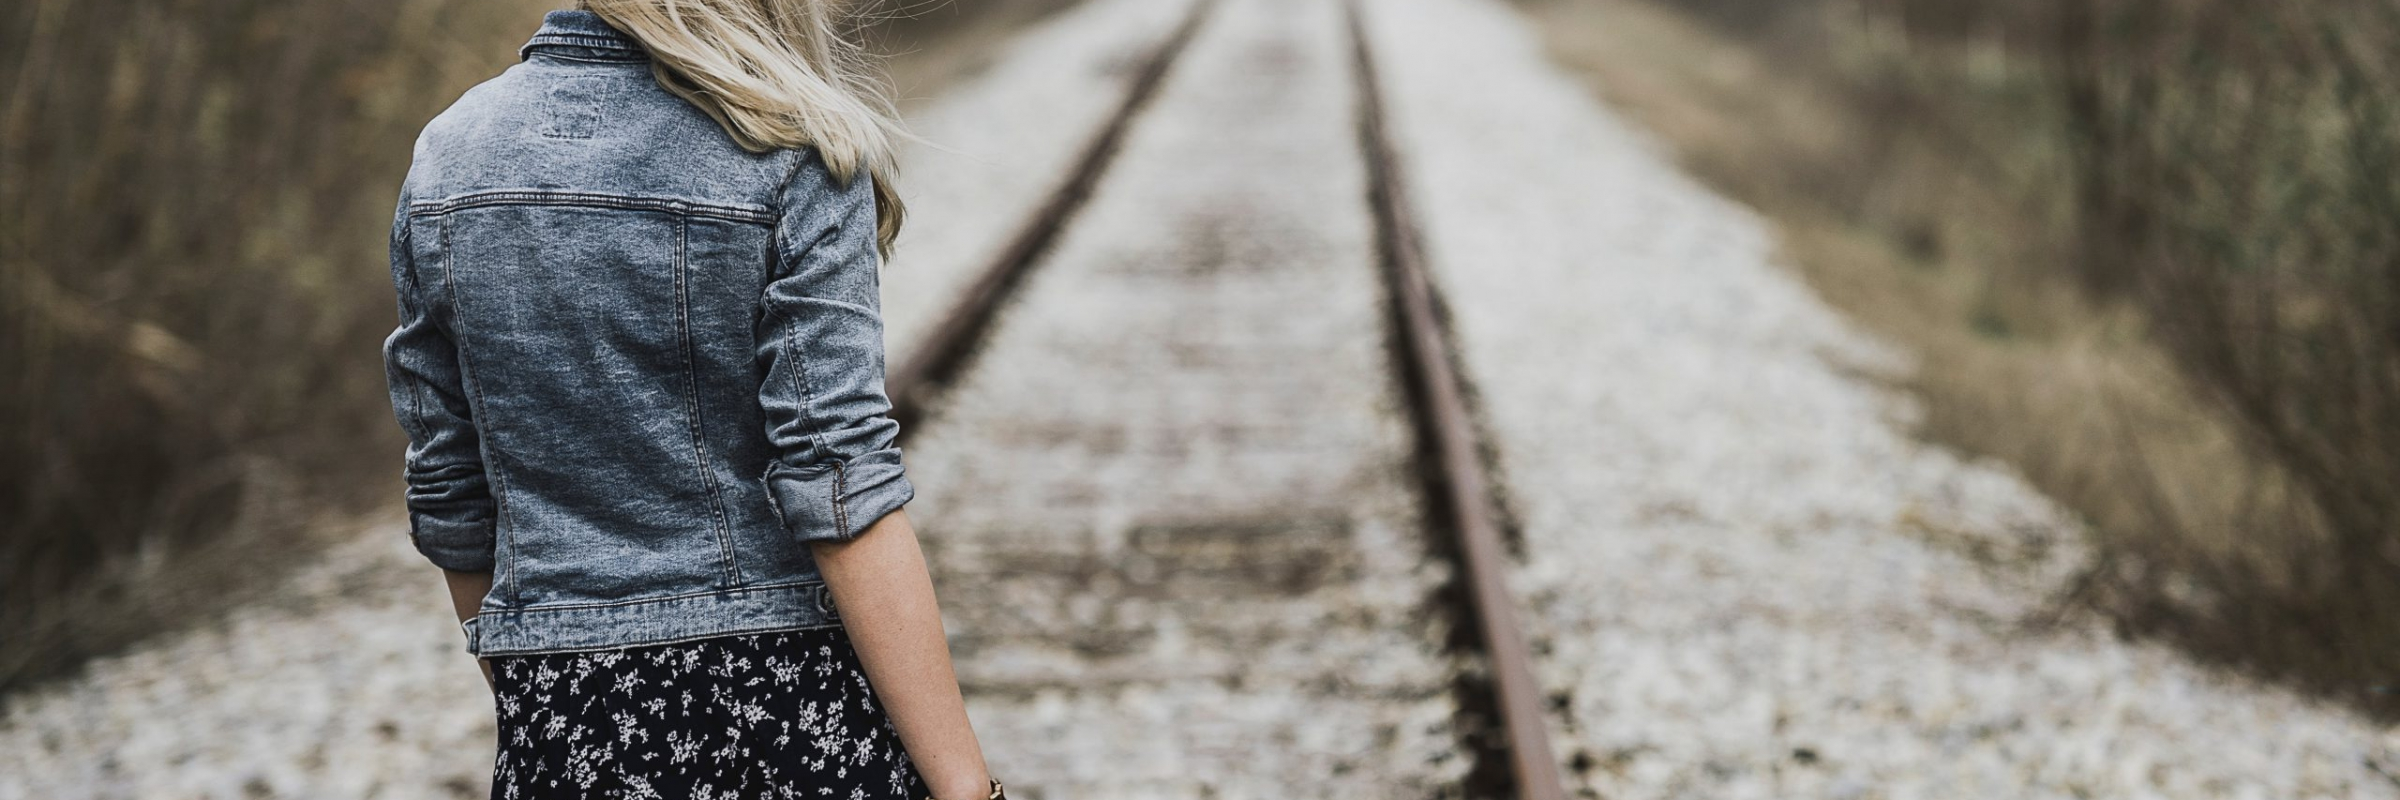 woman-standing-on-railroad-983197